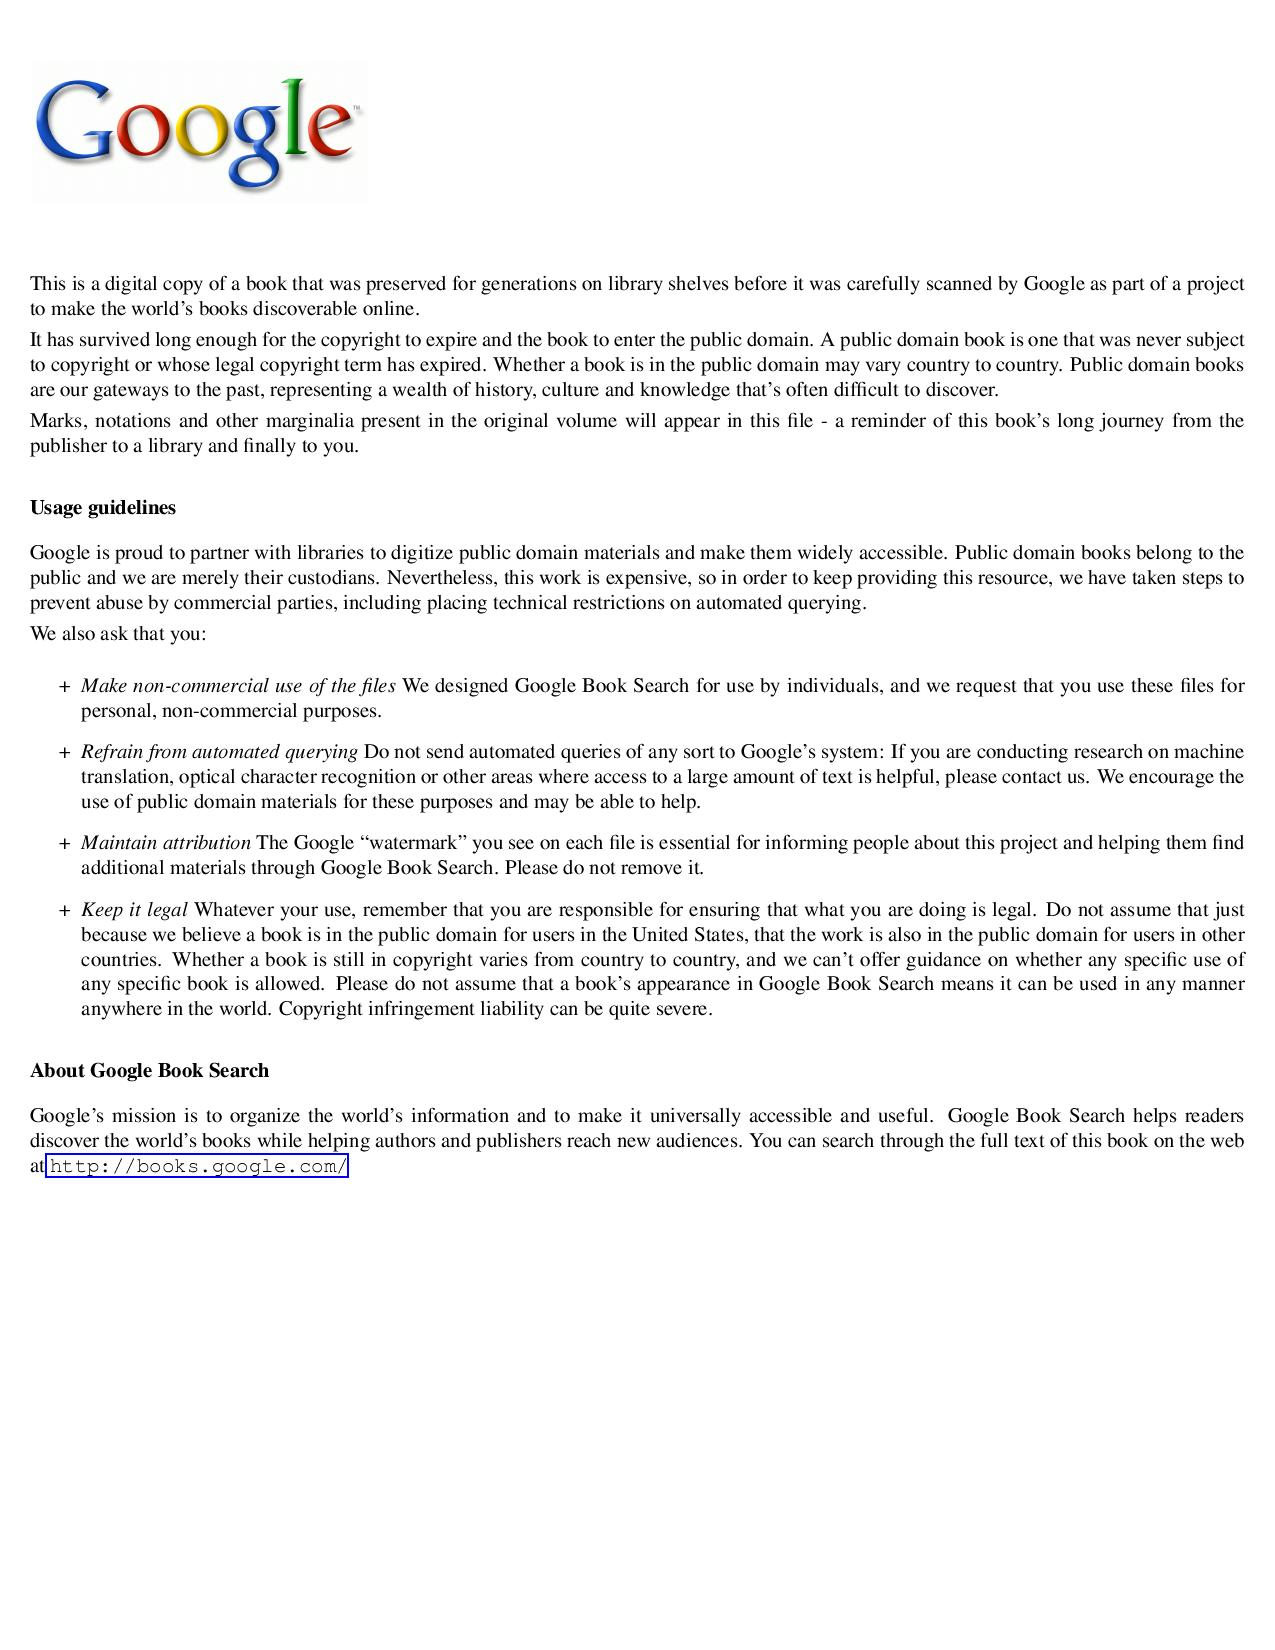 The works of Robert Armin, ed. by A.B. Grosart by Robert Armin